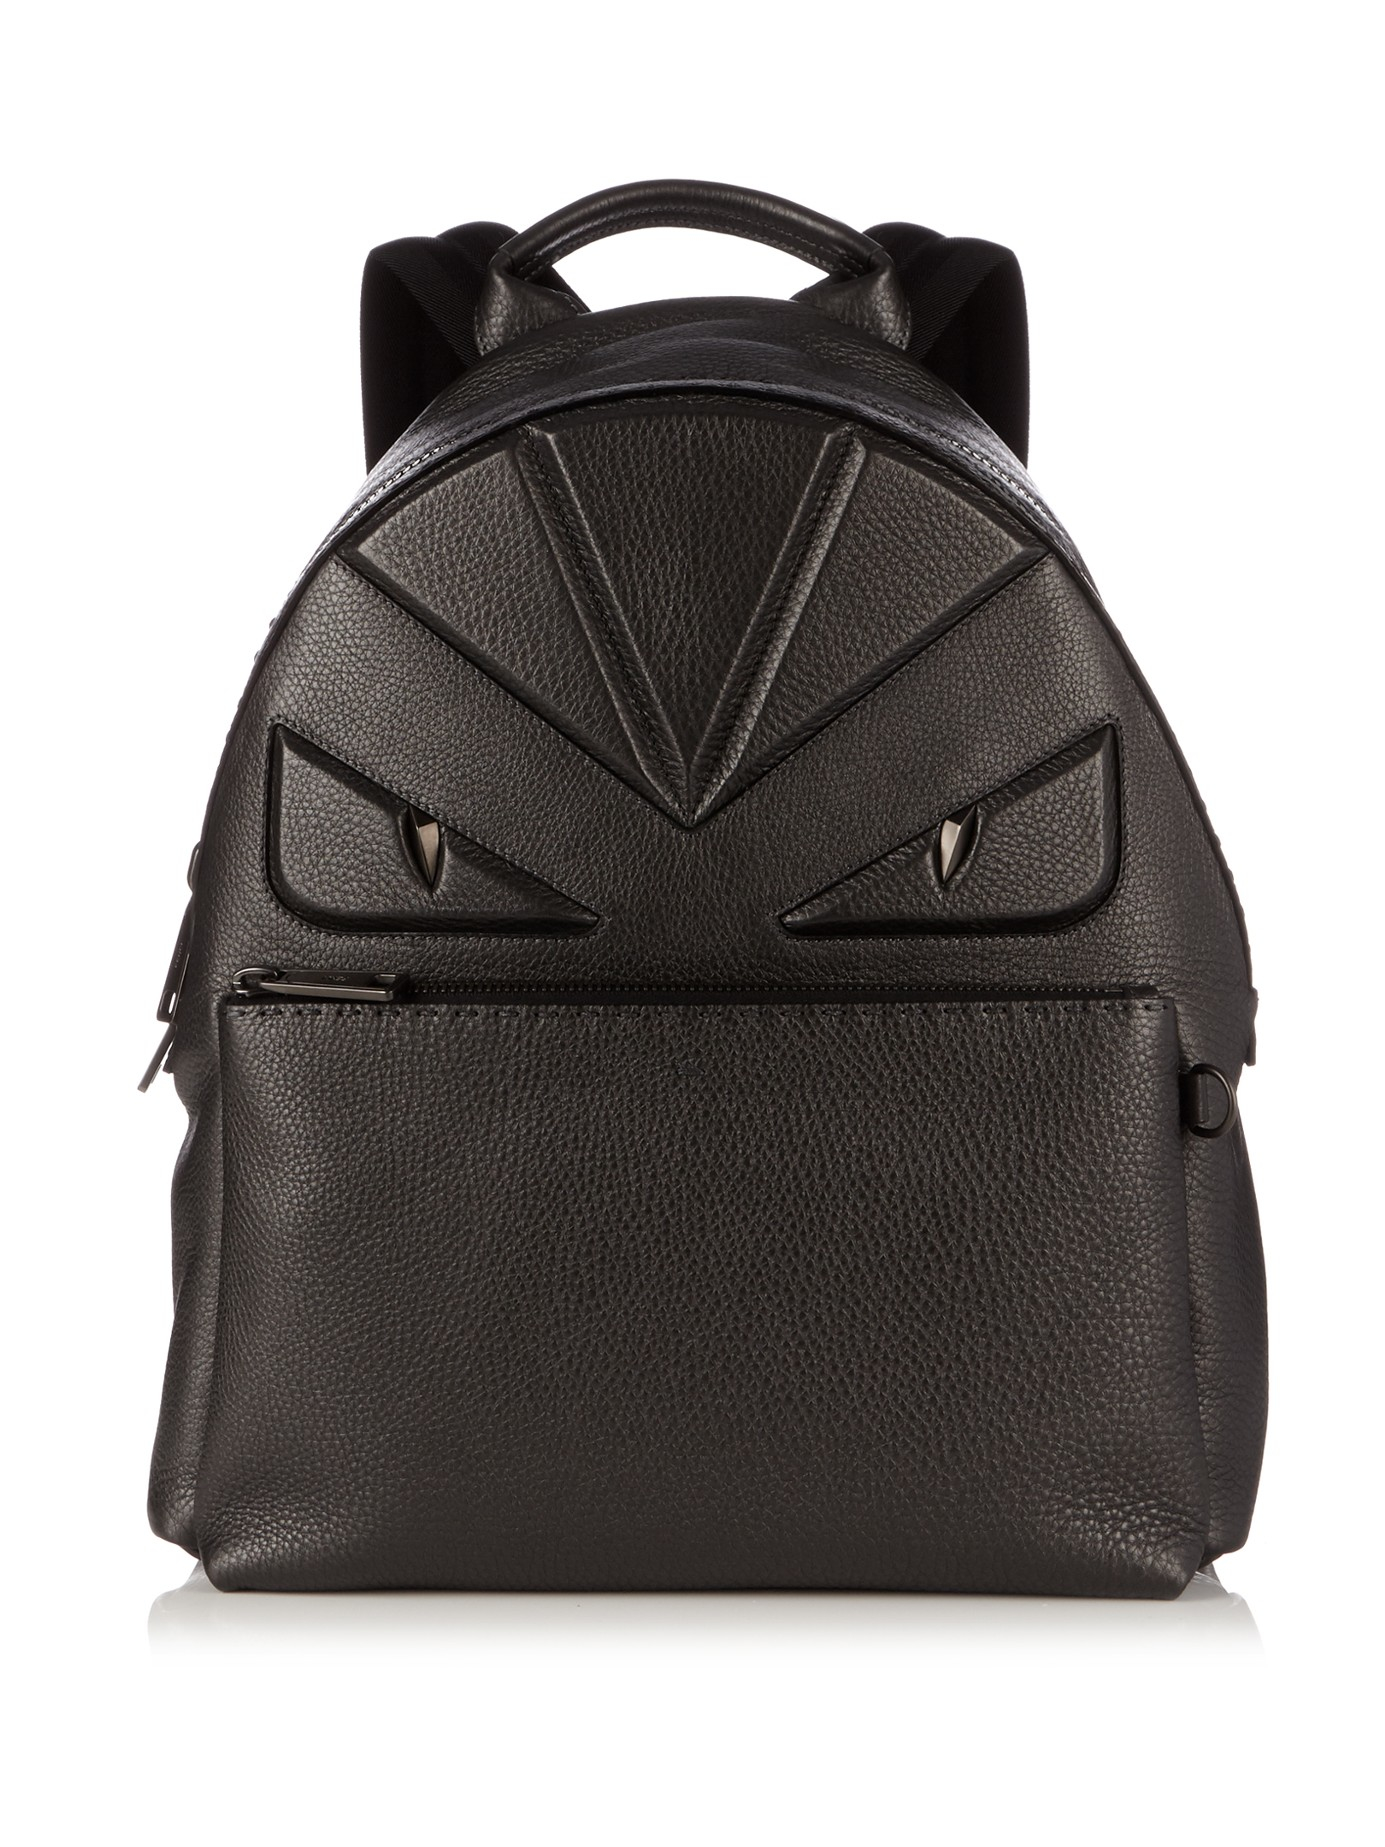 70d40ffc28a0 Fendi Bag Bugs Backpack